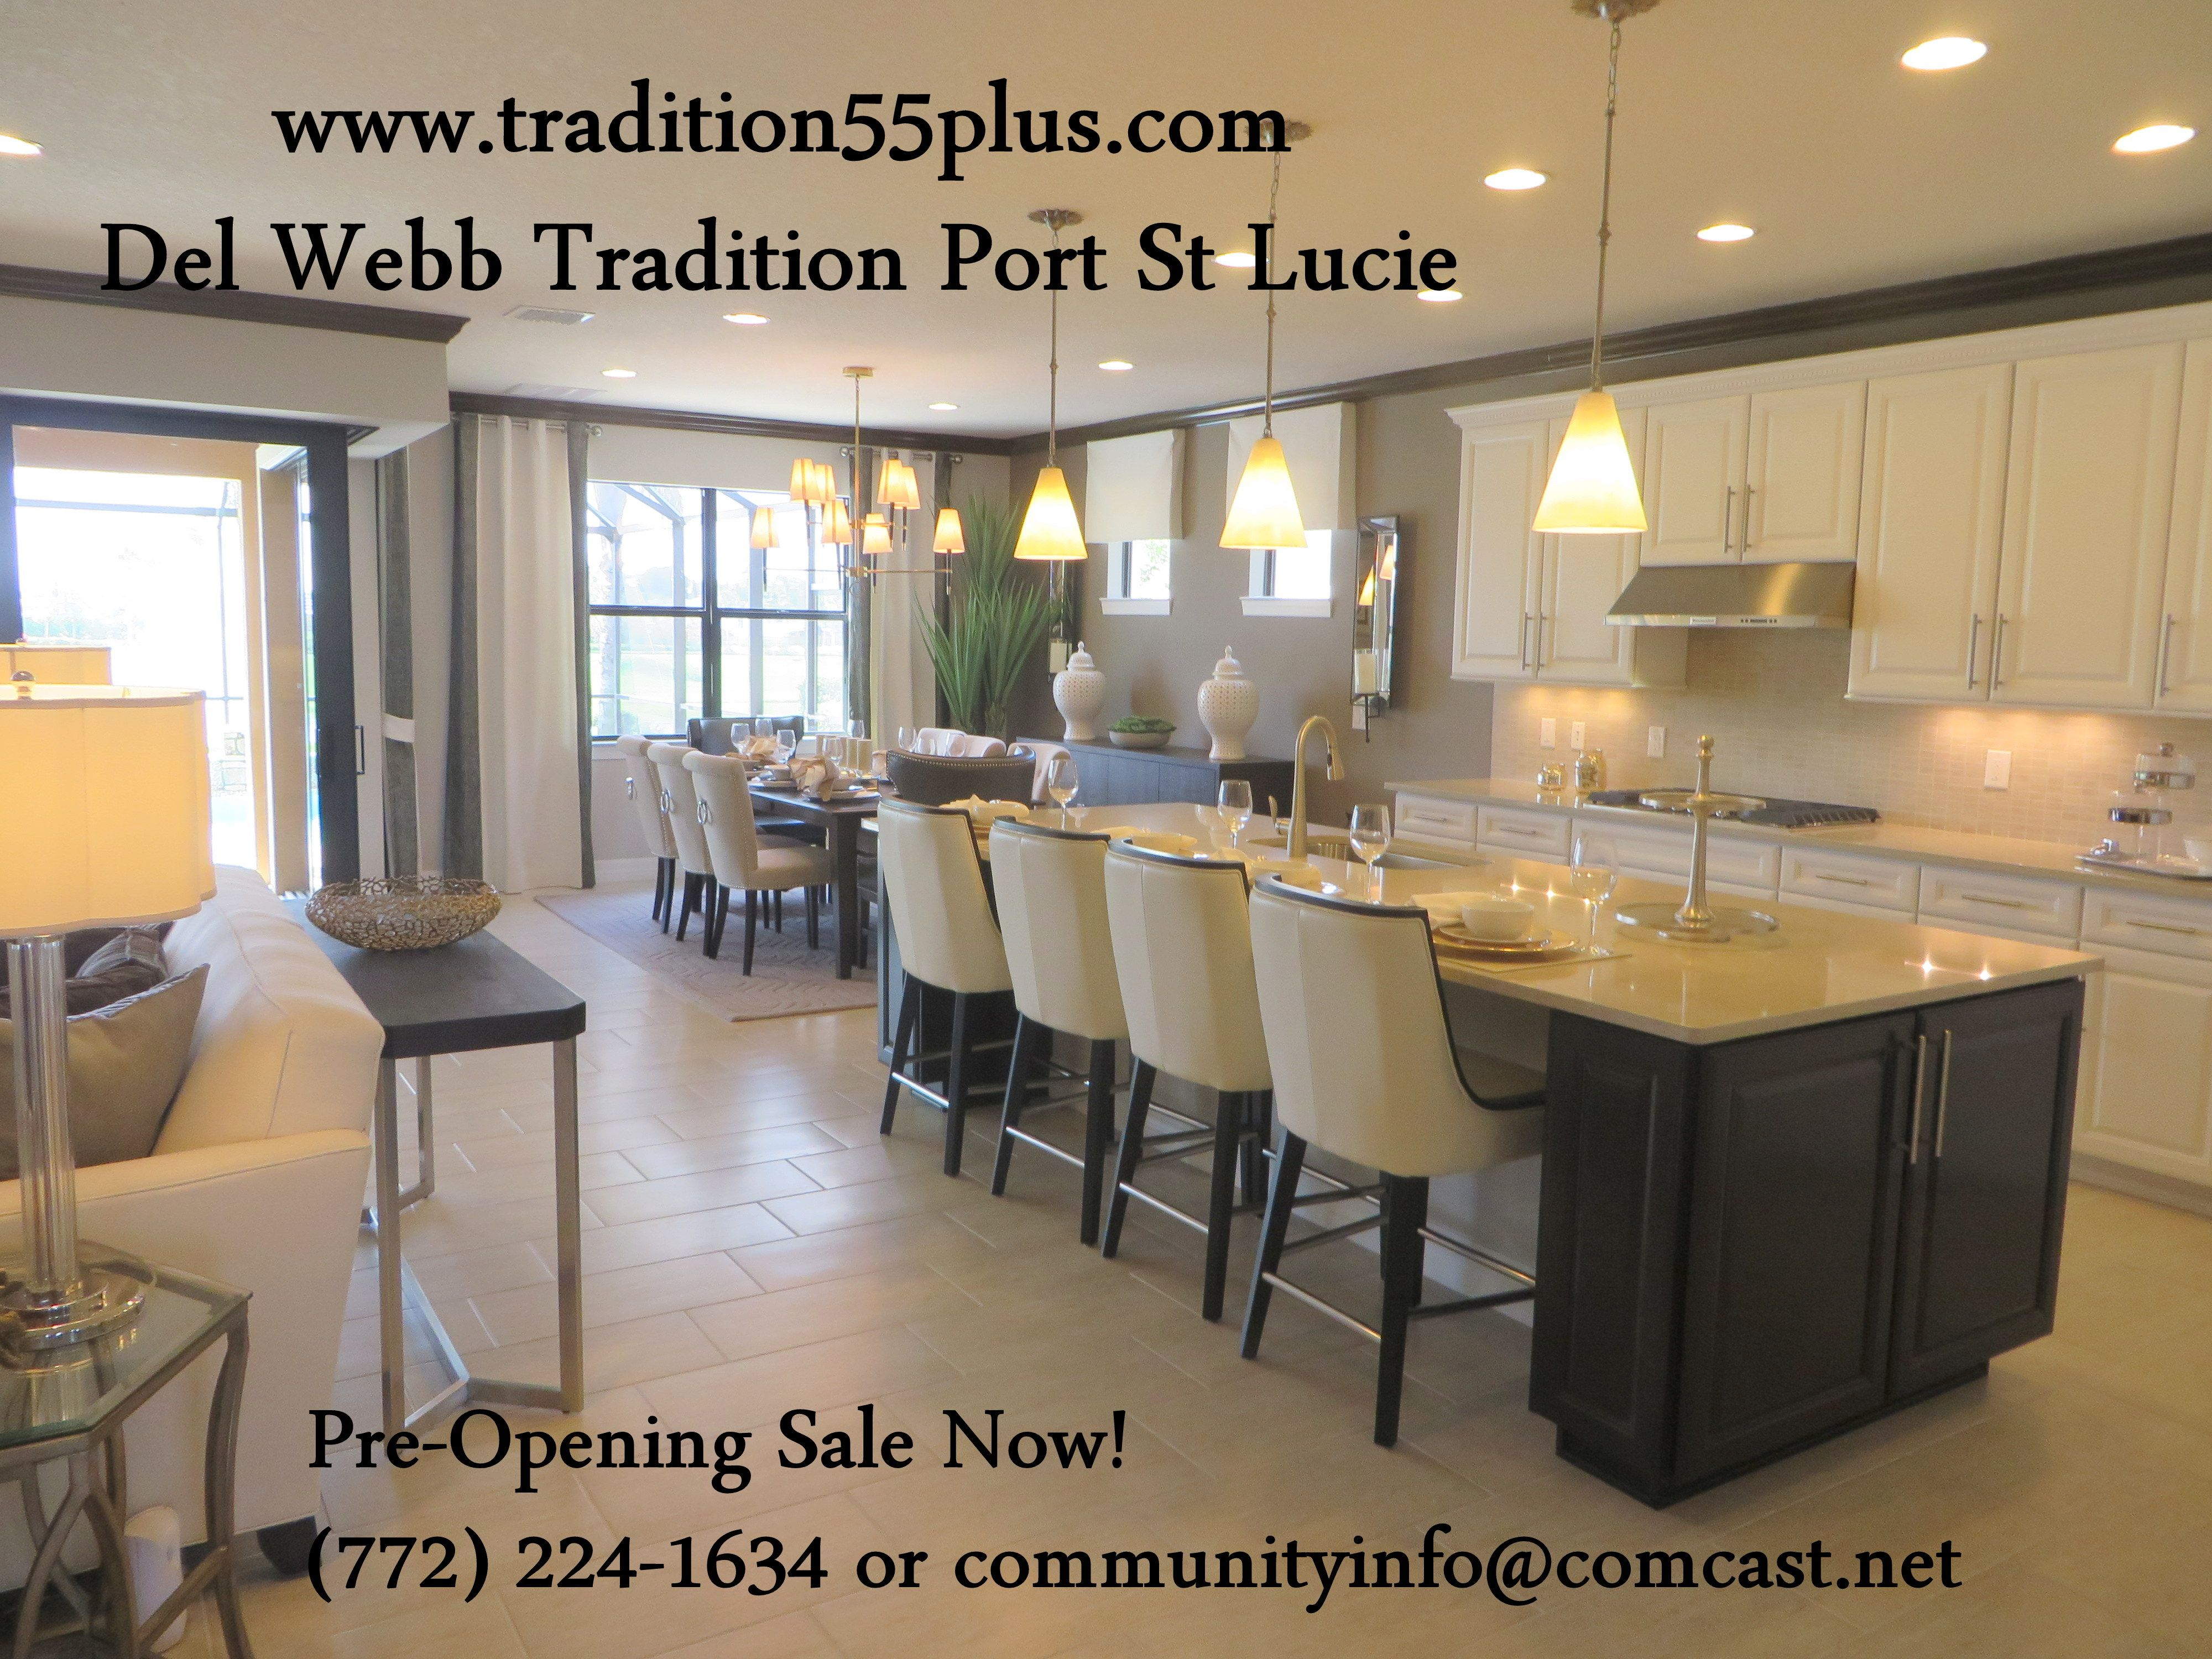 Del webb tradition preopening sale now pre opening